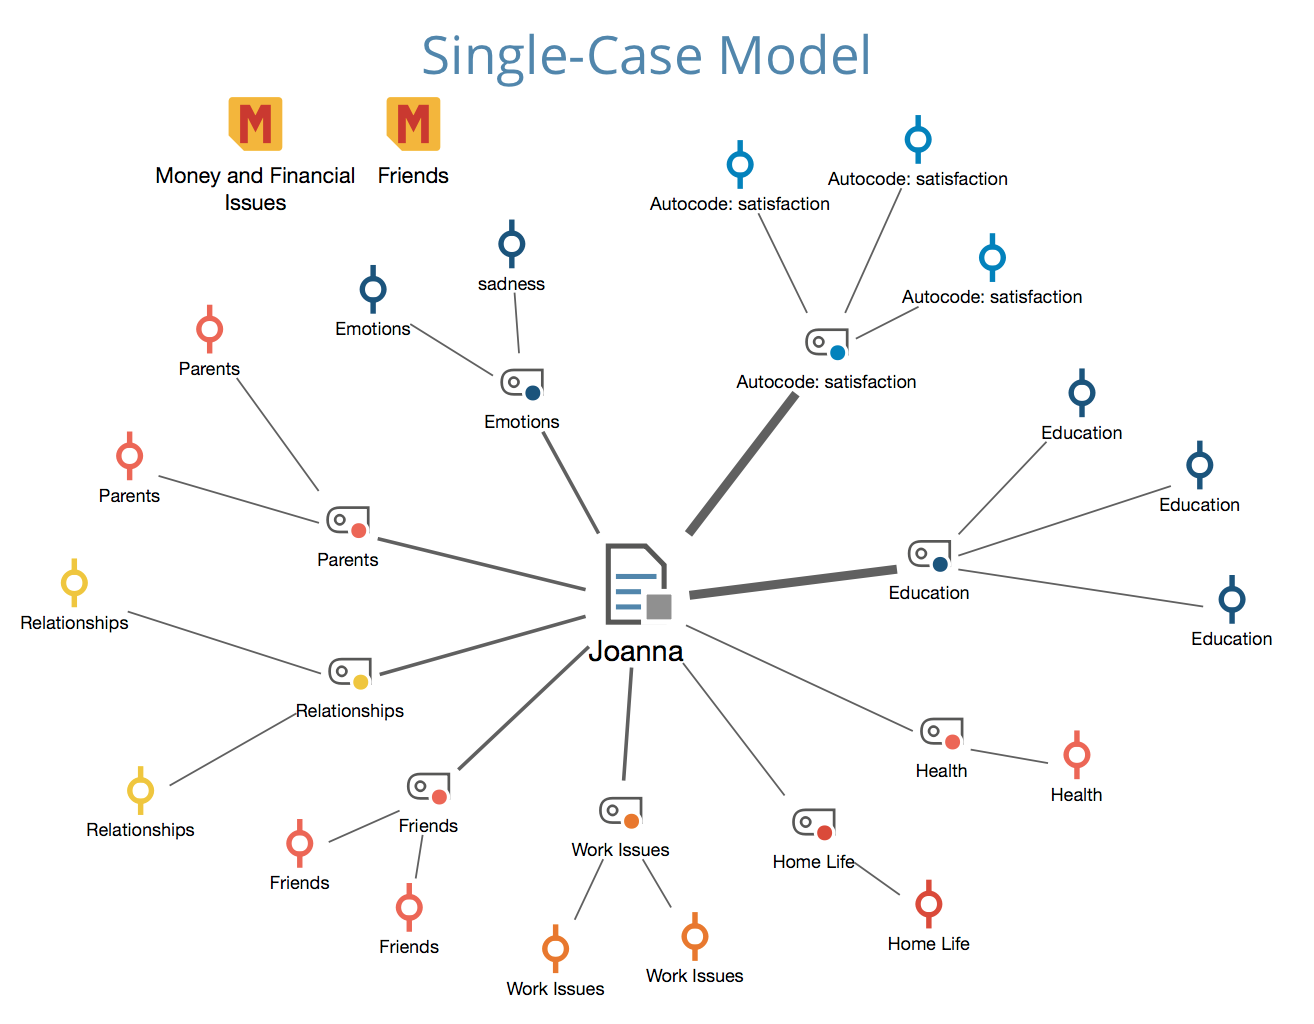 Example of a Single-Case Model